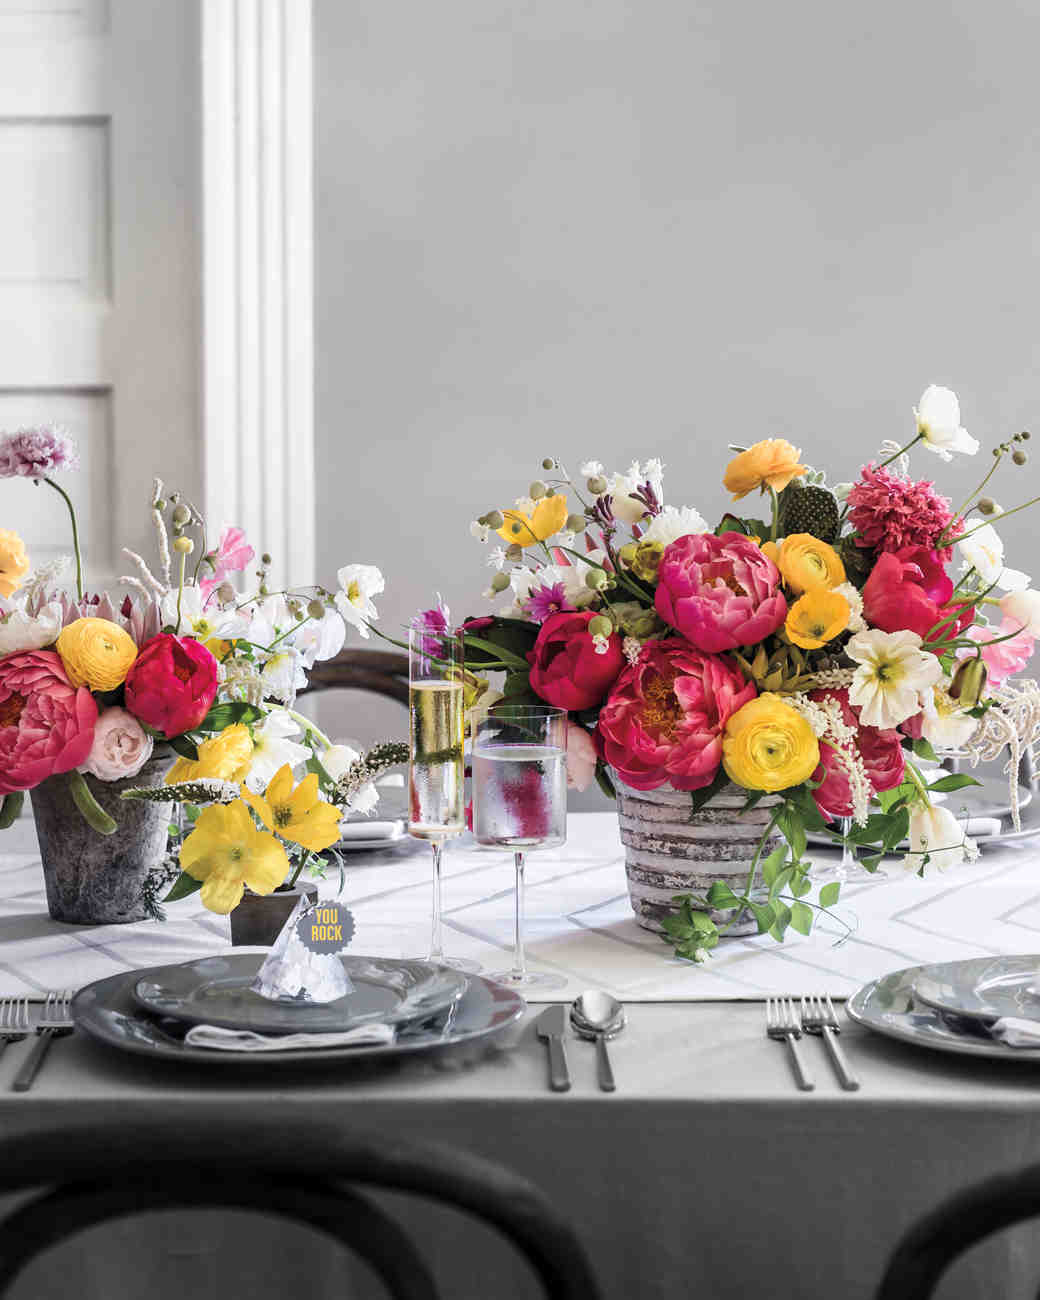 Flowers Wedding Ideas: Spring Wedding Flower Ideas From The Industry's Best